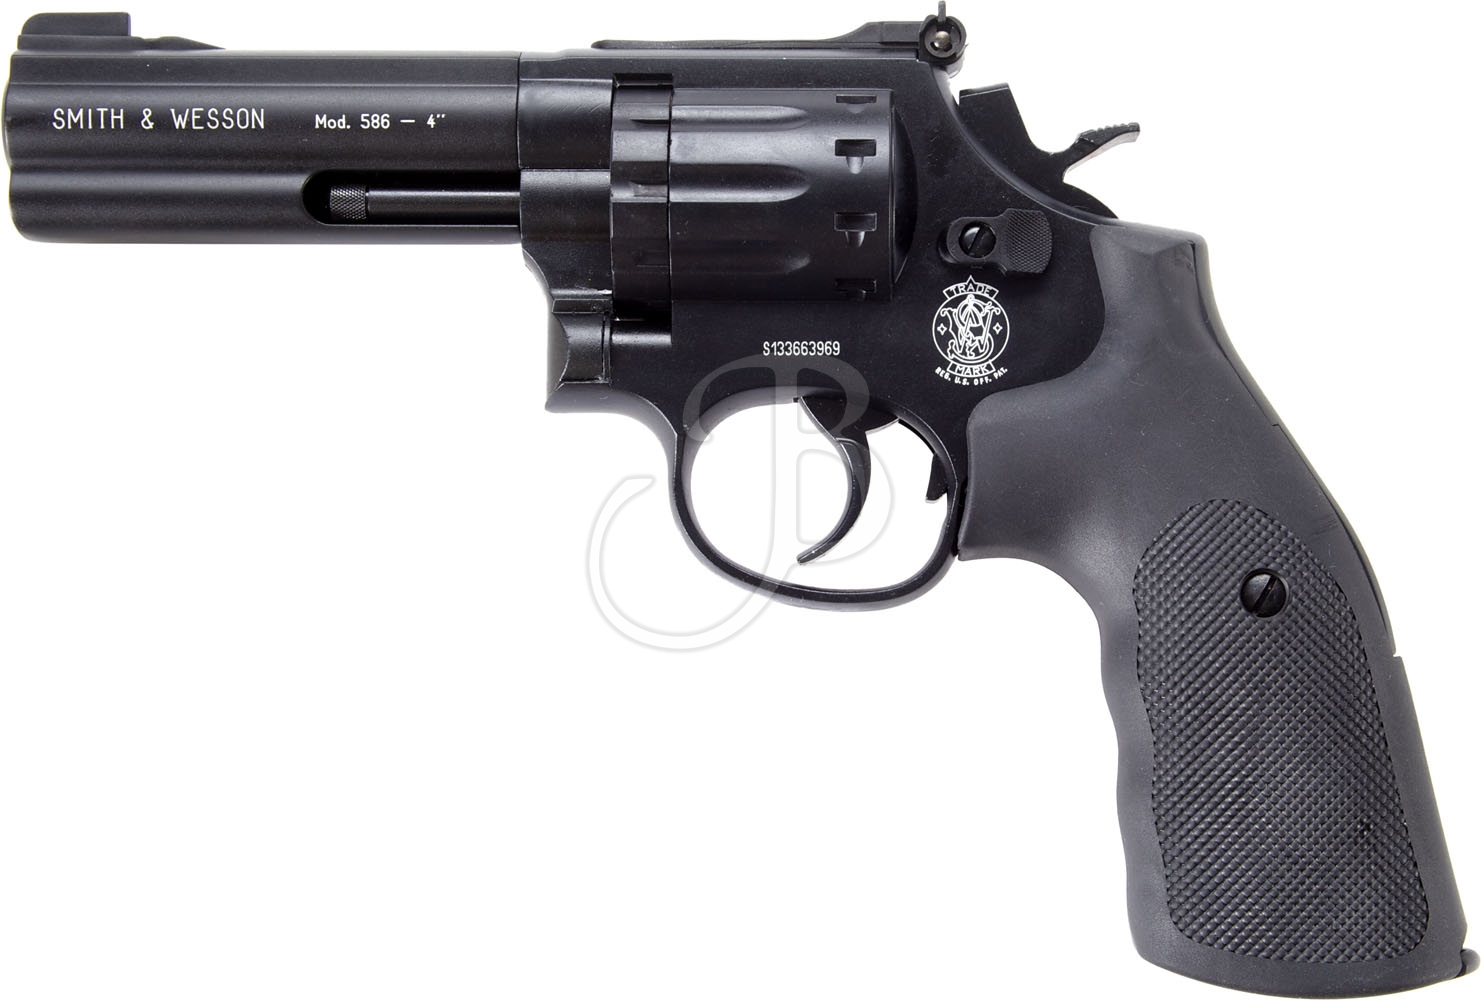 UMAREX Smith & Wesson 586 4″